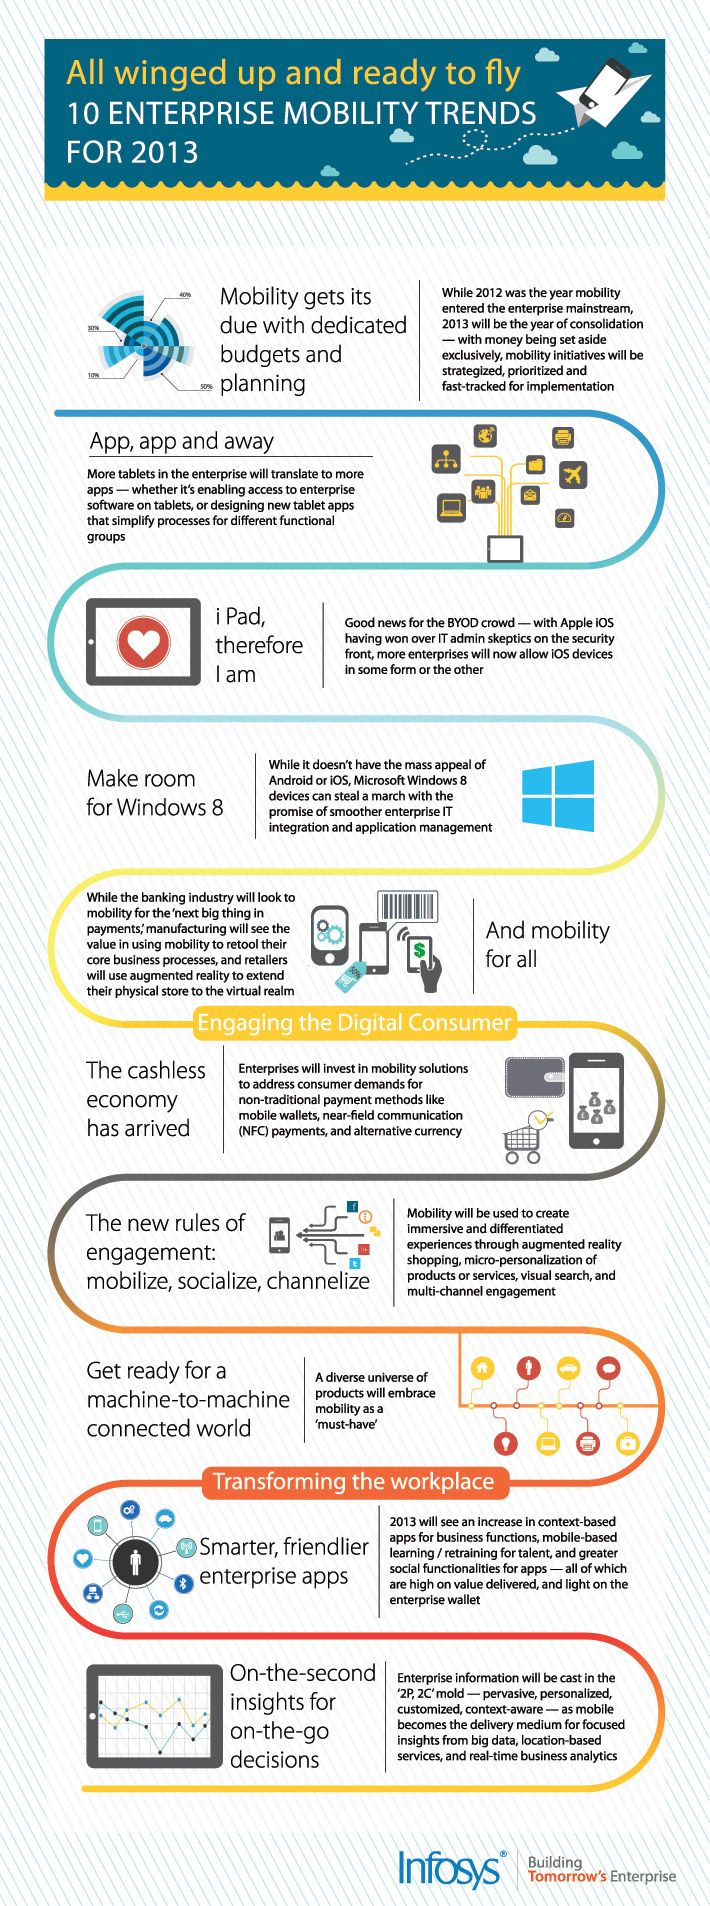 10 Mobility Trends For 2013 - Infographic